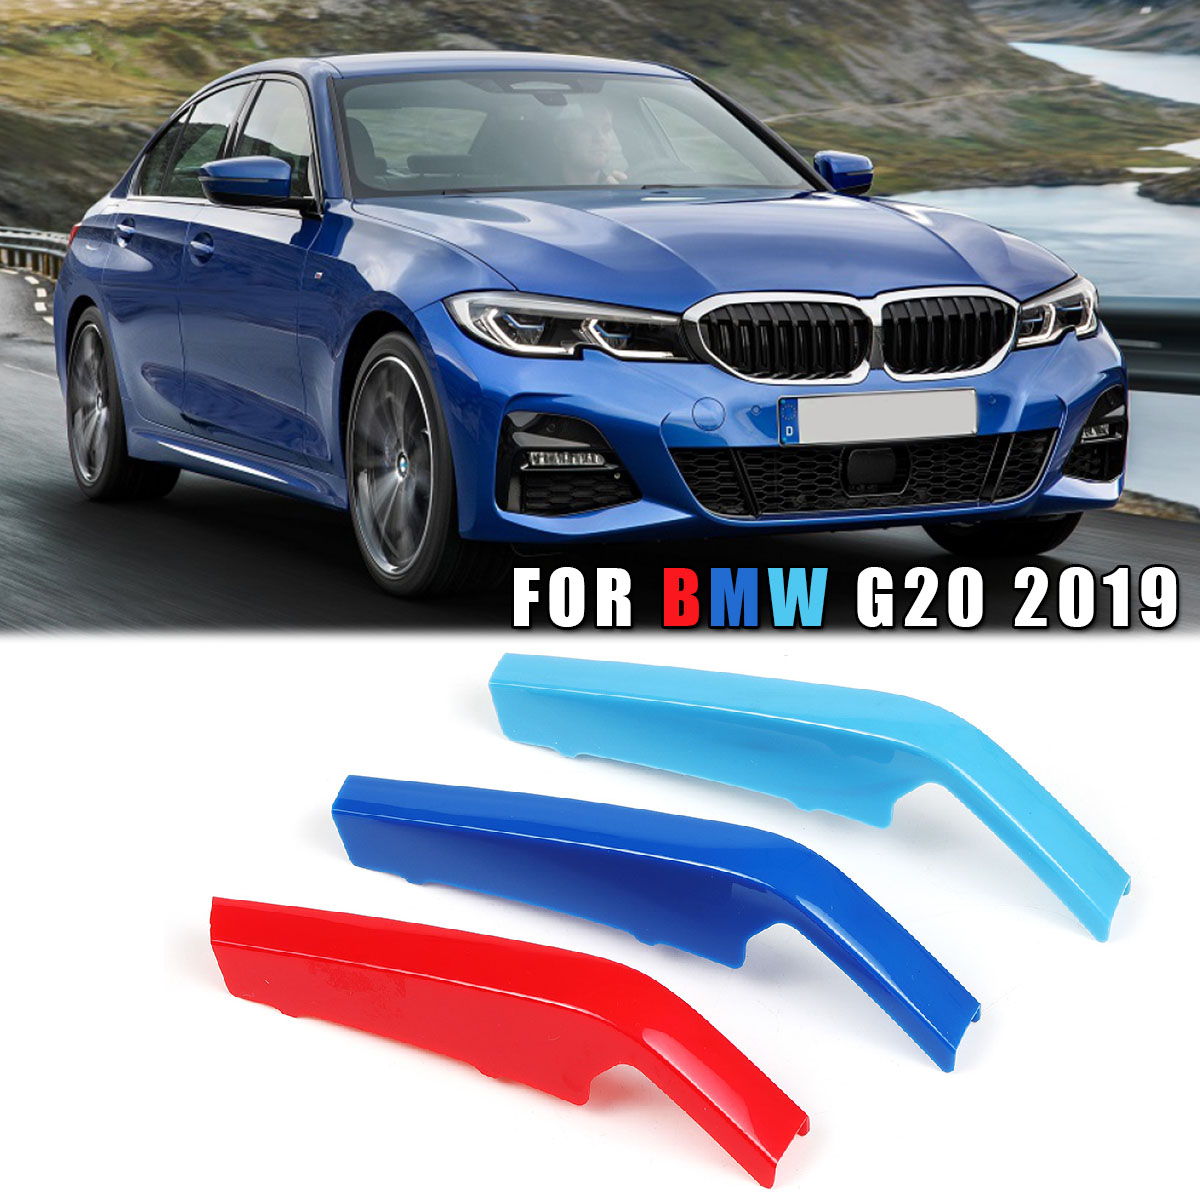 Front Grill Grille Cover Clip Trim M-Color 3 Colors For BMW 3-series G20 2019 image